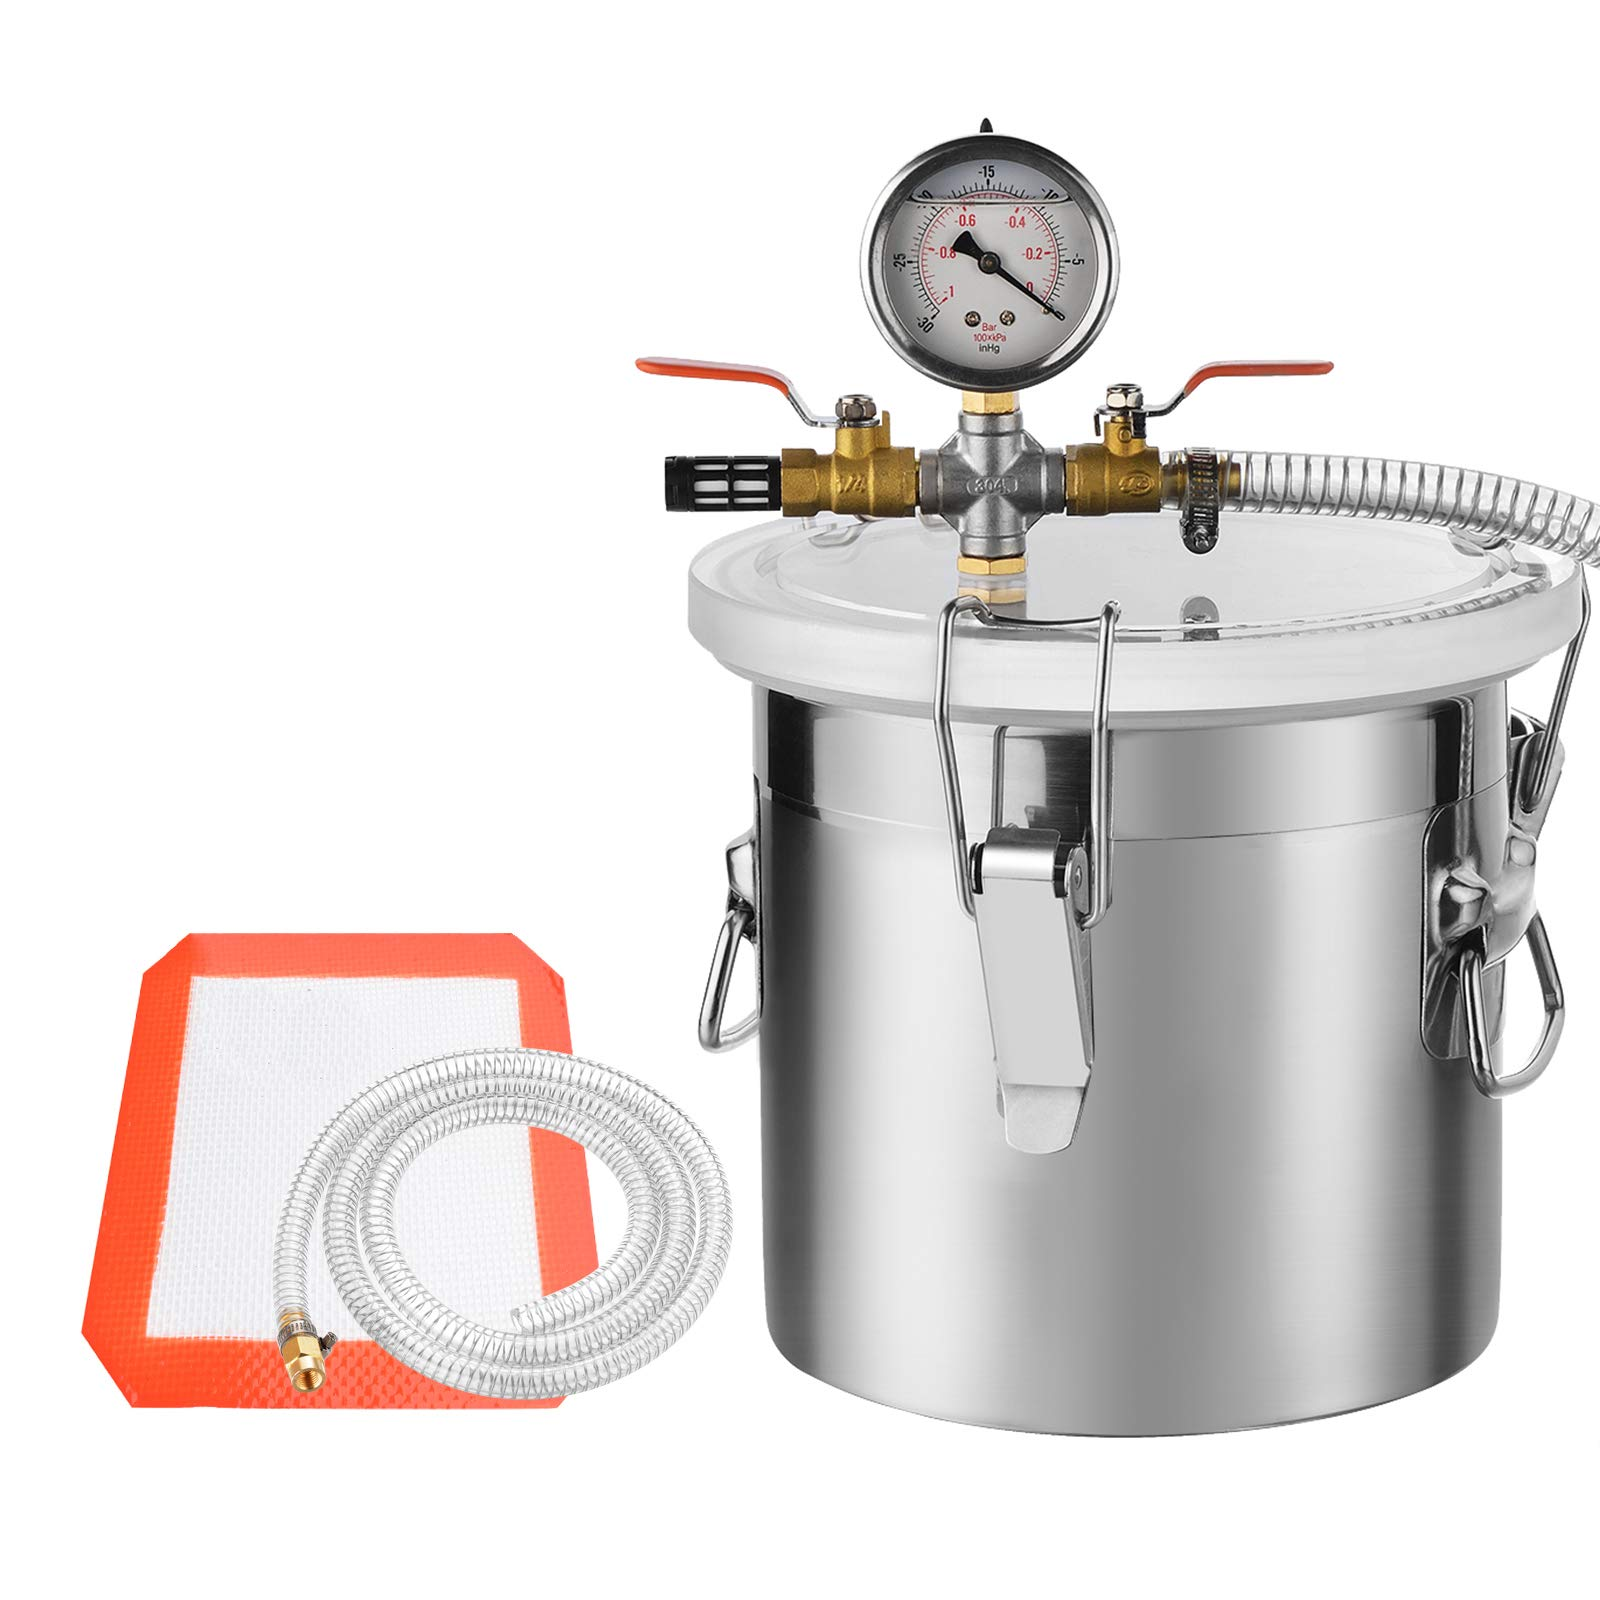 SUNCOO 5 Gallon Stainless Steel Vacuum Chamber for Degassing Urethanes, Resins, Silicones and Epoxies